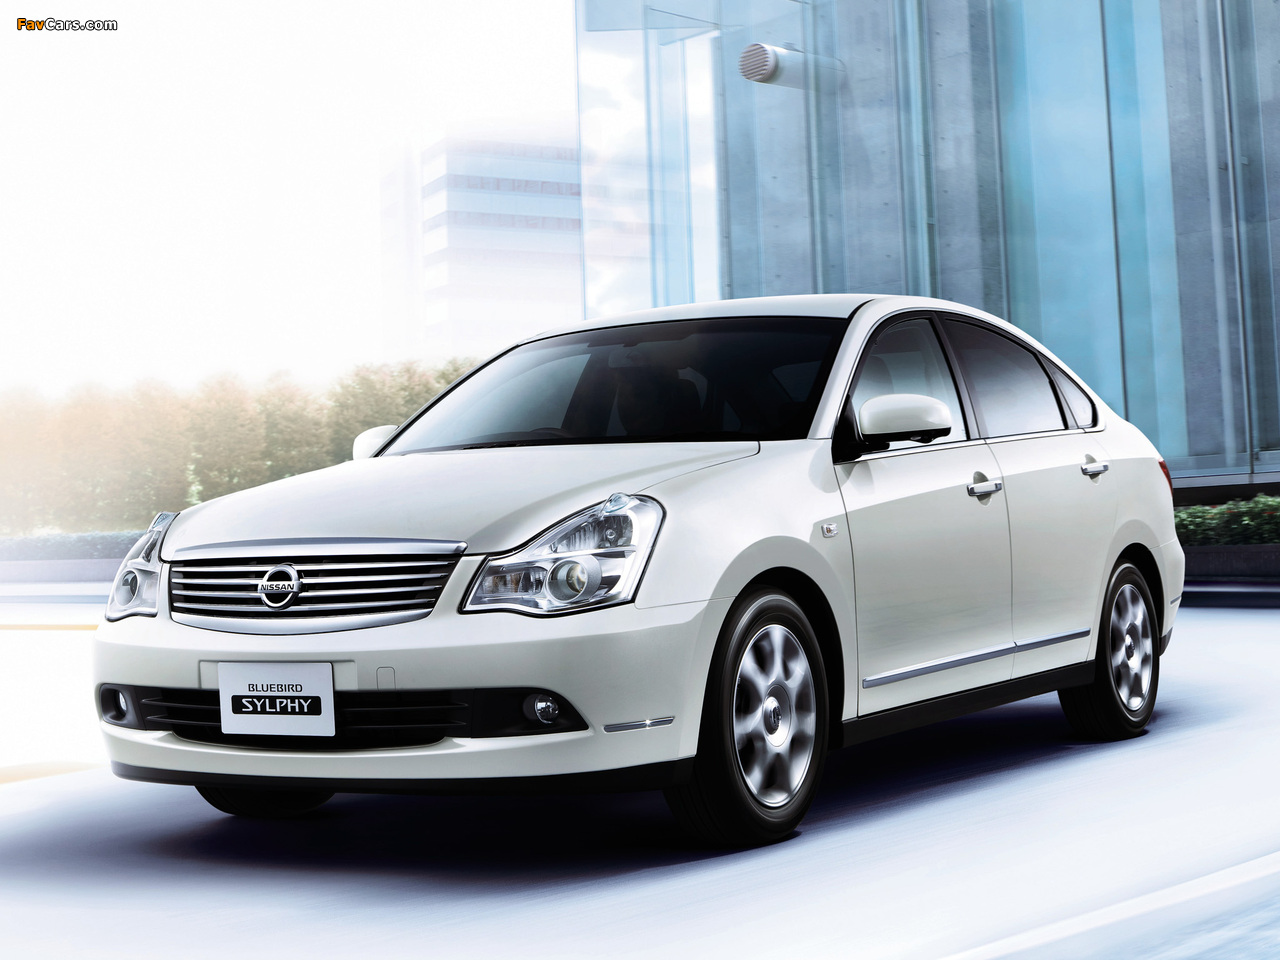 Nissan Bluebird Sylphy (G11) 2005 pictures (1280 x 960)